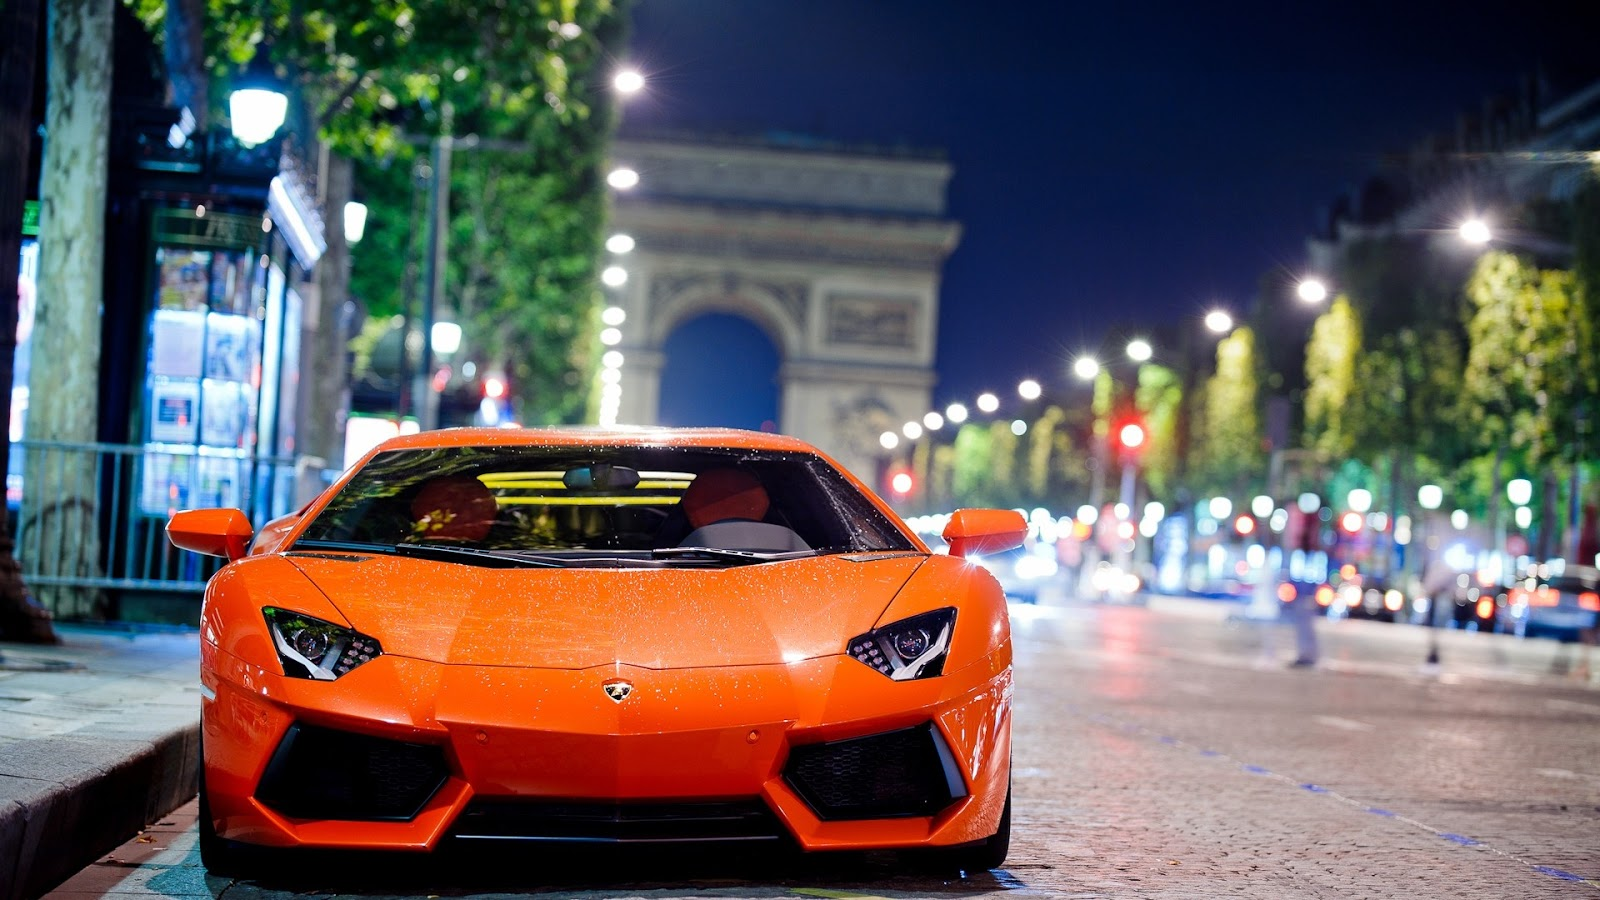 Lamborghini Cars HD wallpapers Download 1080p Ultra HD Wallpapers 1600x900